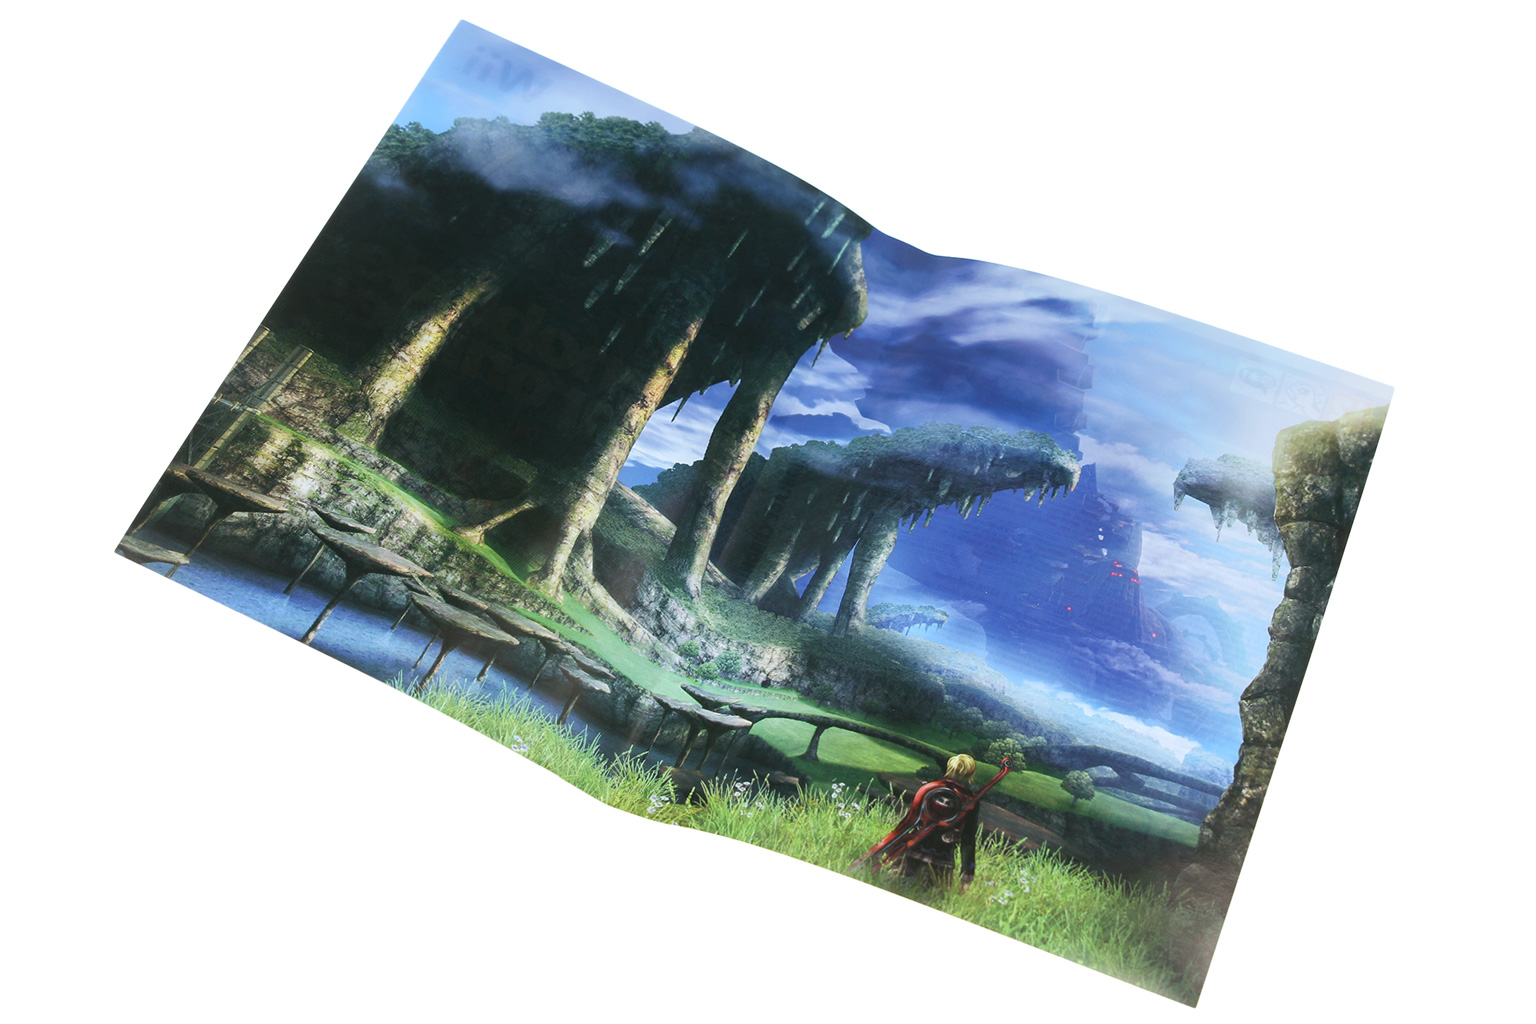 Xenoblade Chronicles detail number 2